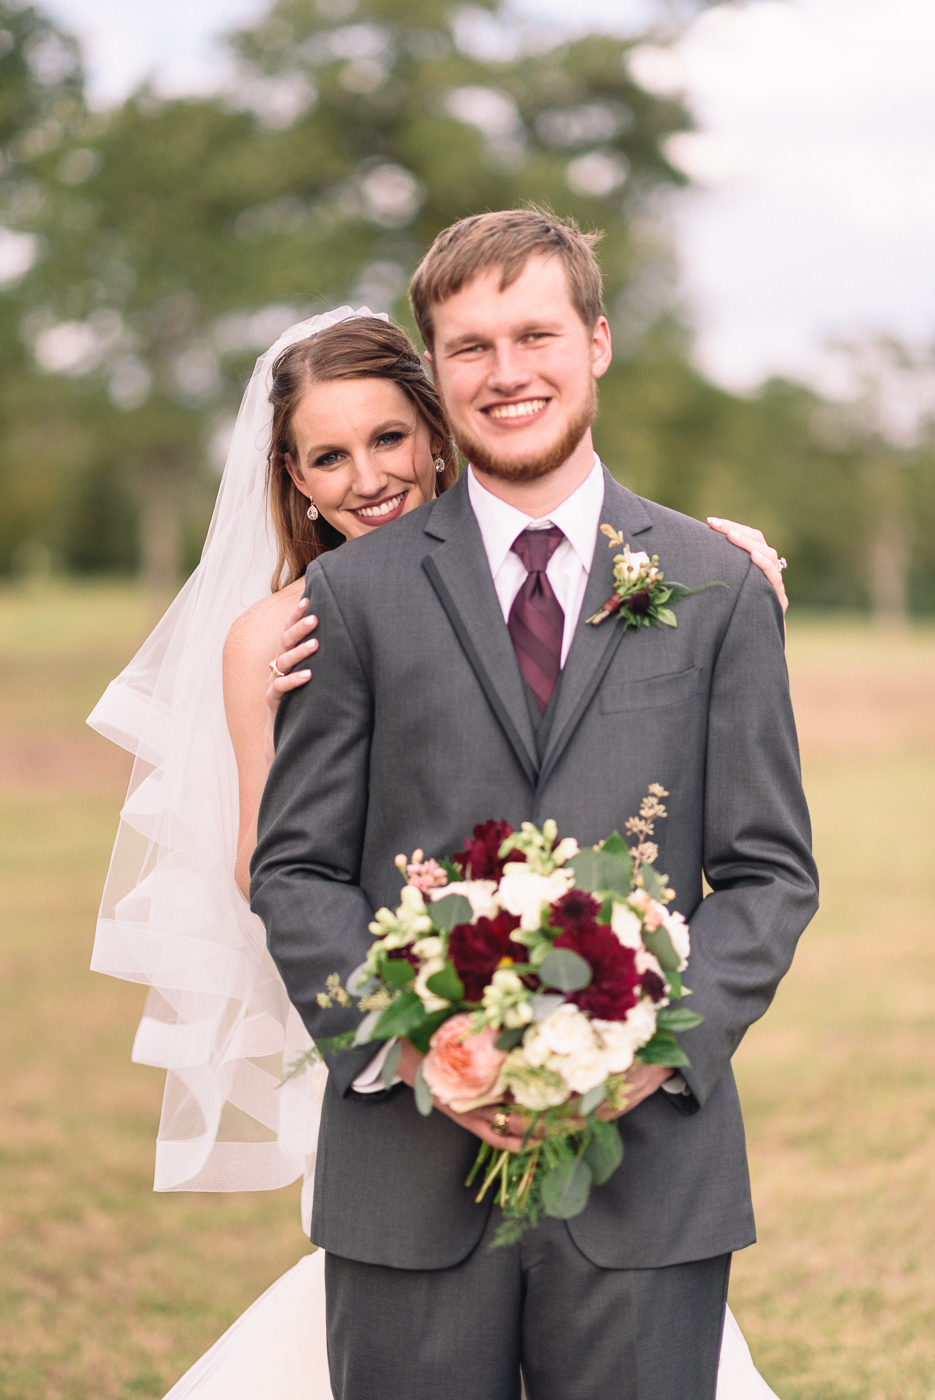 wedding portrait husband and wife maroon tie bouquet